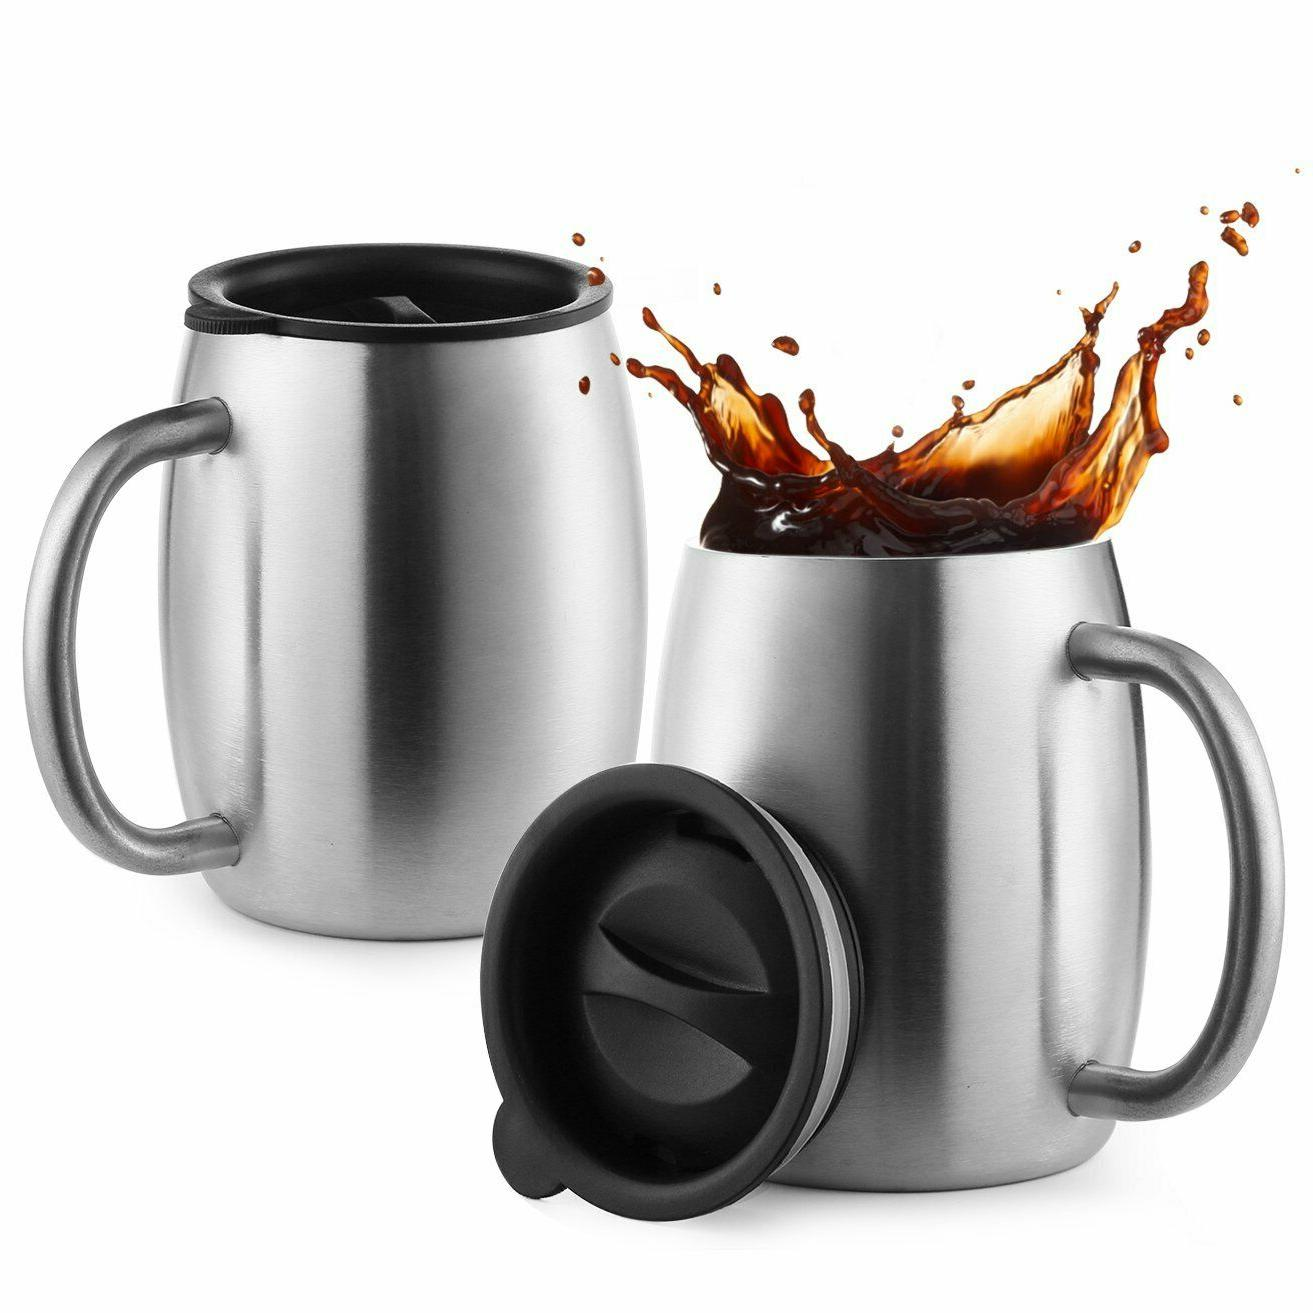 Stainless Steel Coffee with 14 Double Insul